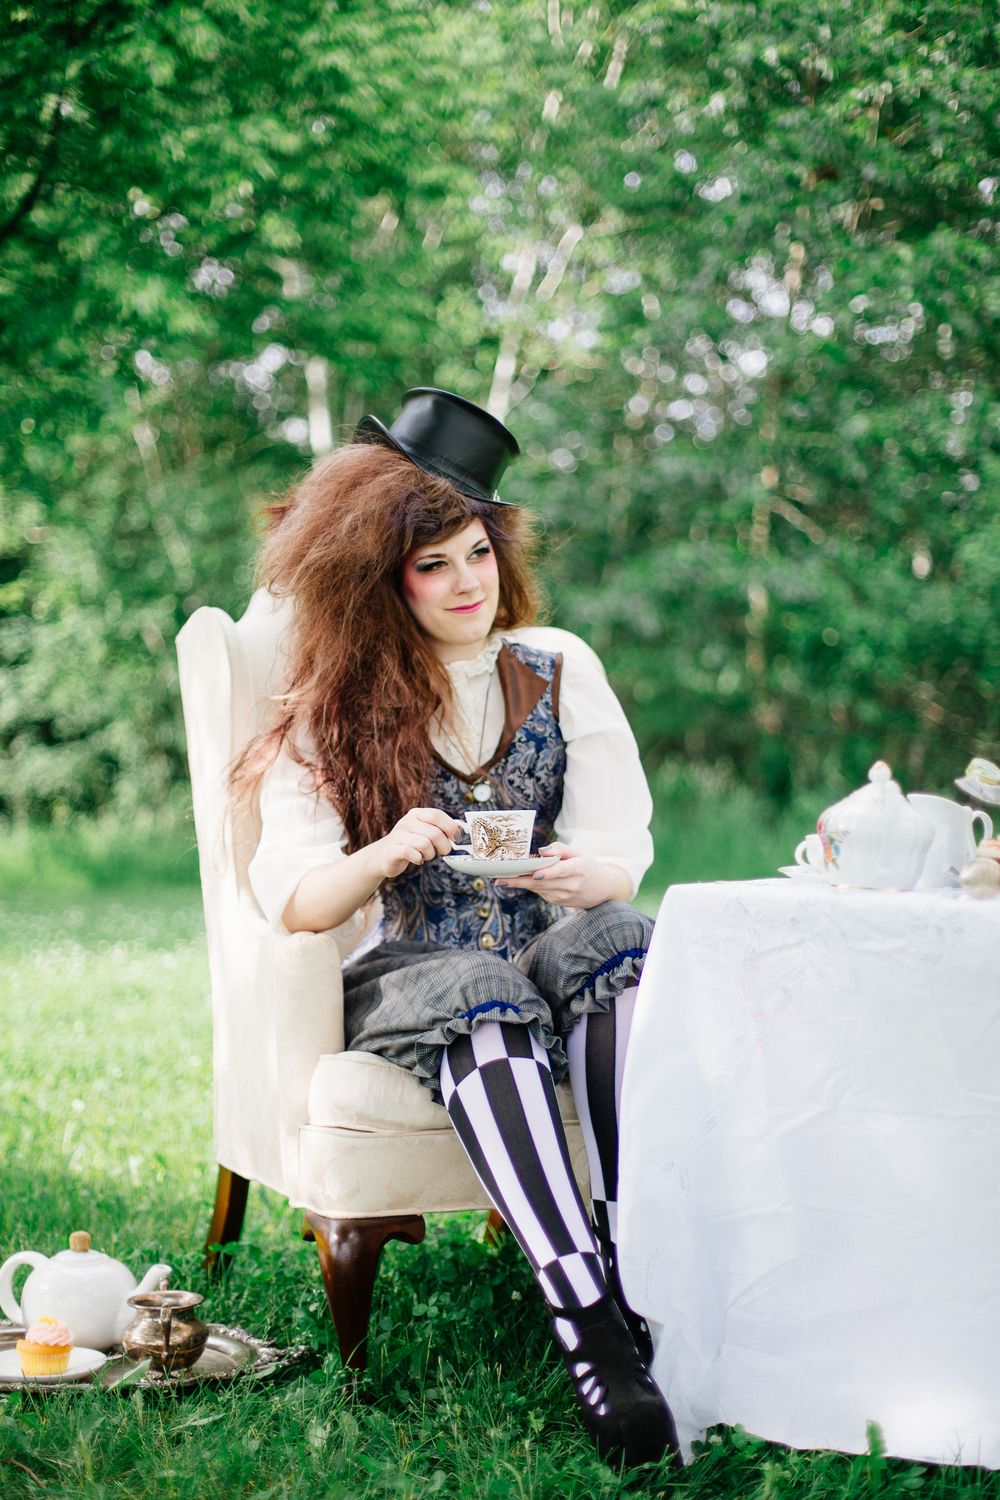 wedding_photographer_minnesota_jen_montgomery_photography[teaparty]-2.jpg